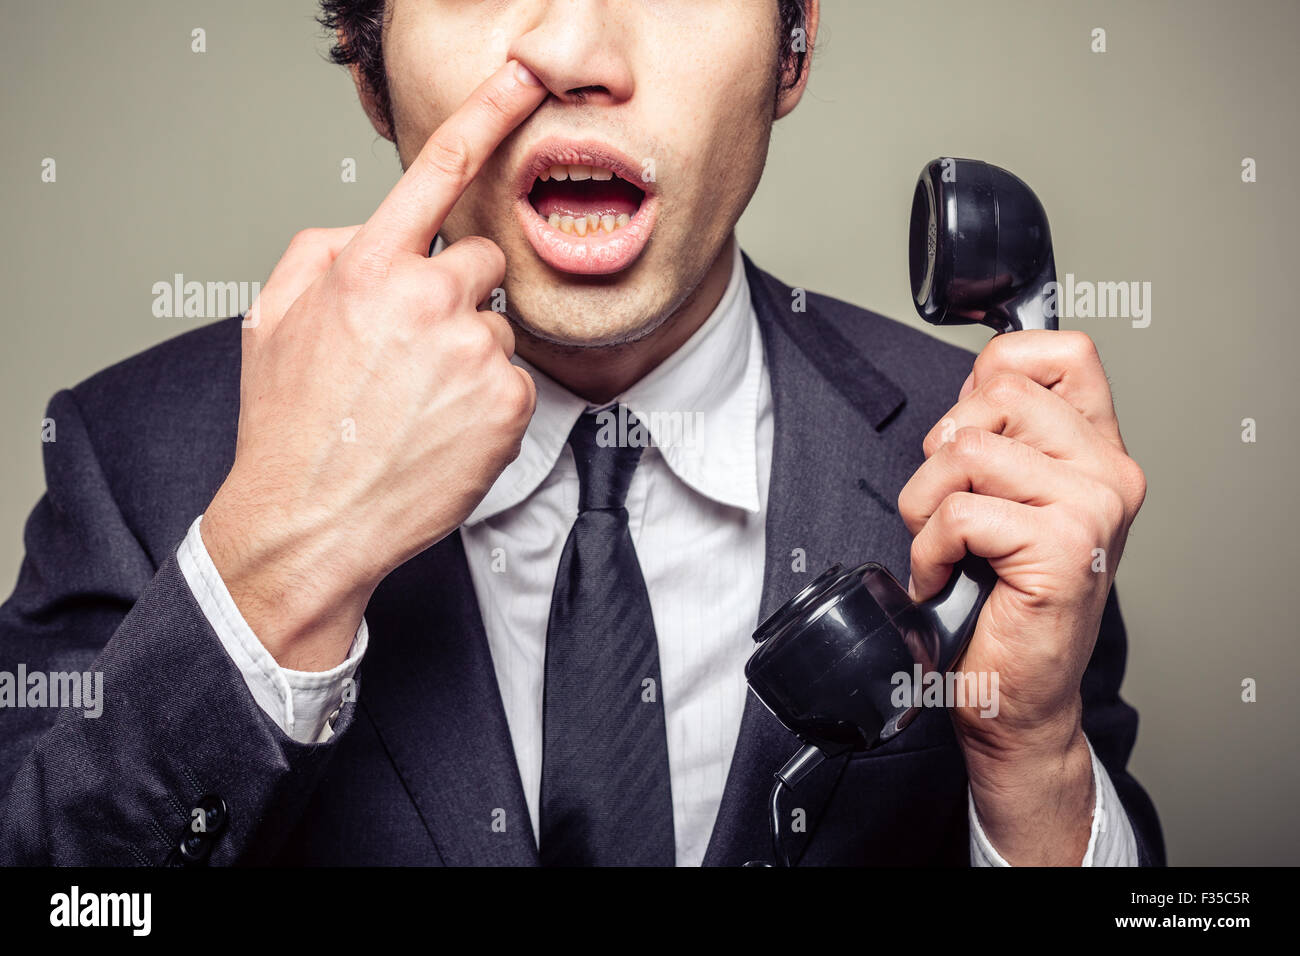 Young incompetent businessman is on the phone and is picking his nose - Stock Image